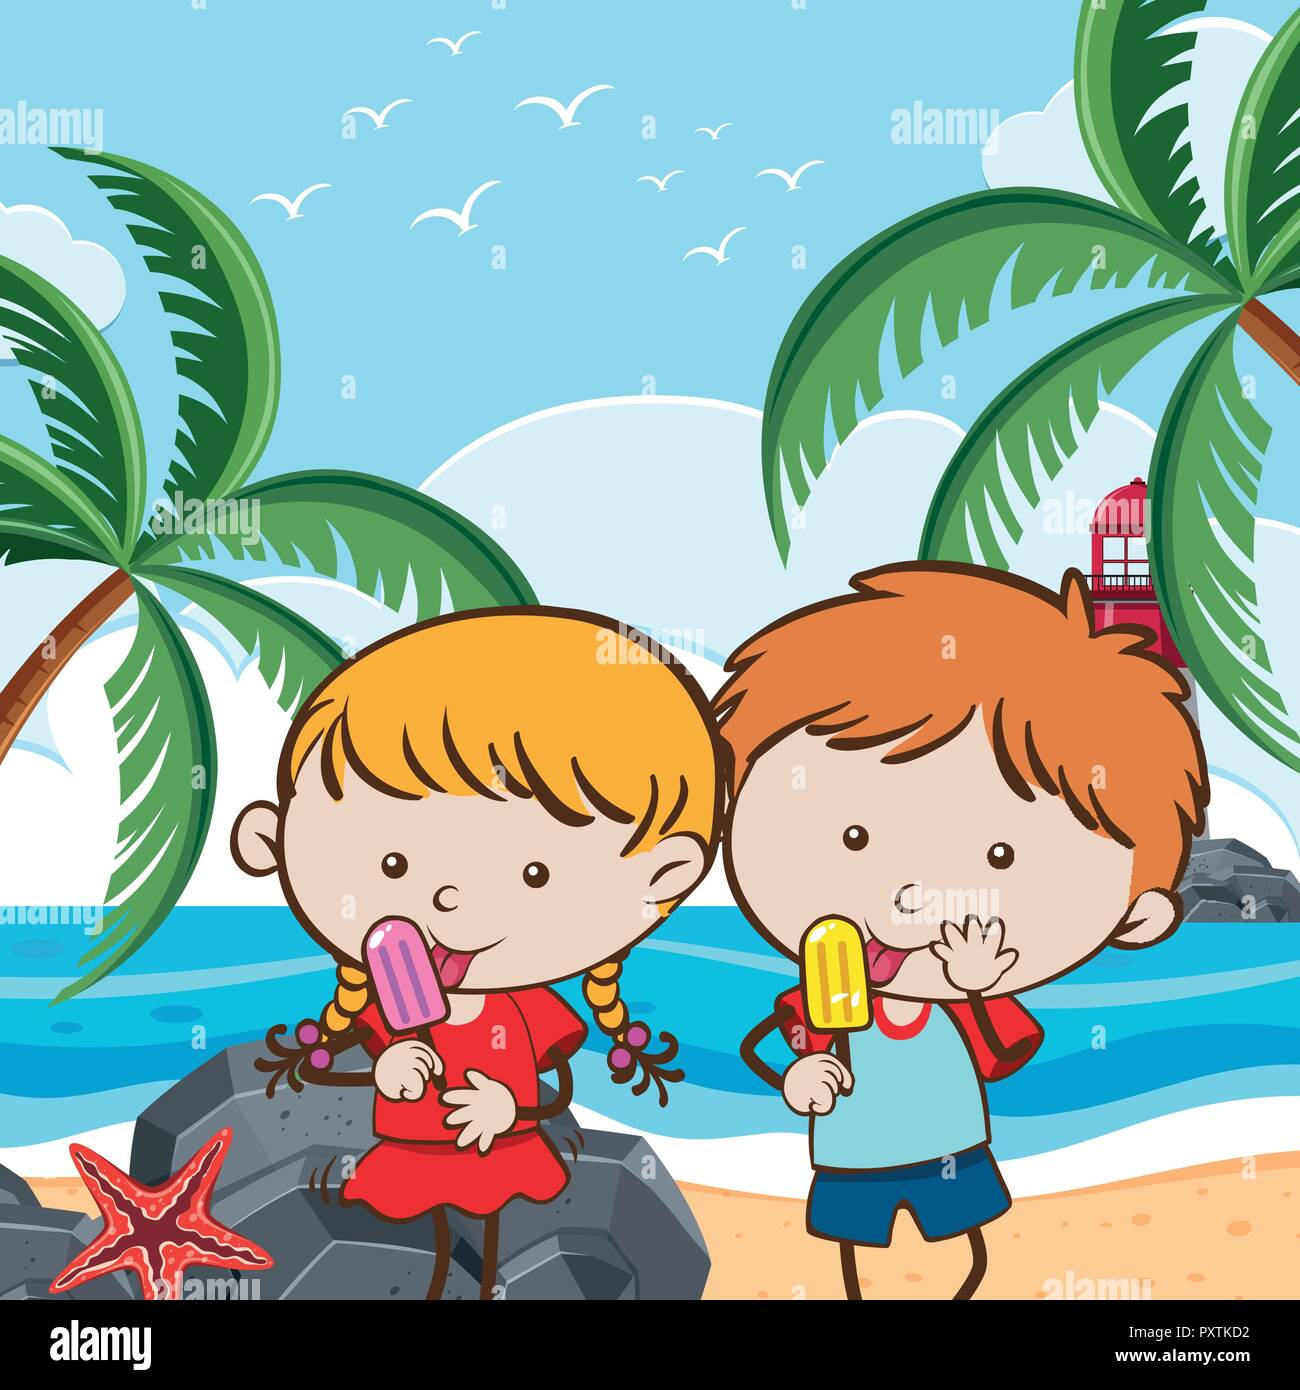 A Couple Eating Ice Cream in Hot Summer illustration - Stock Vector